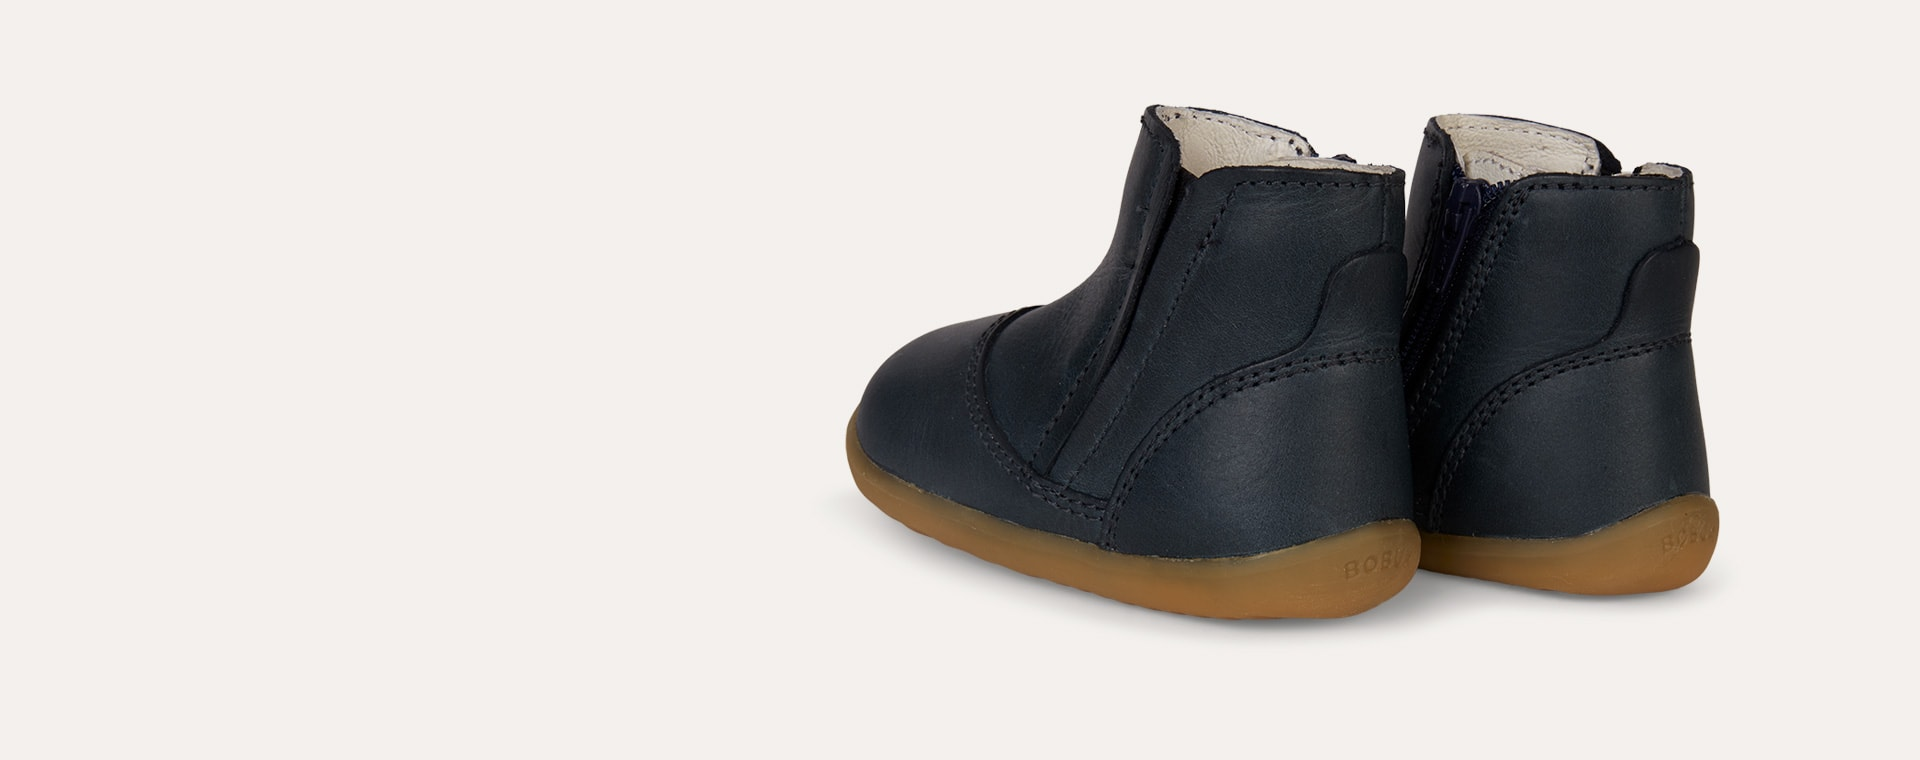 Ink Bobux Step Up Shire Merino lined Winter Boot